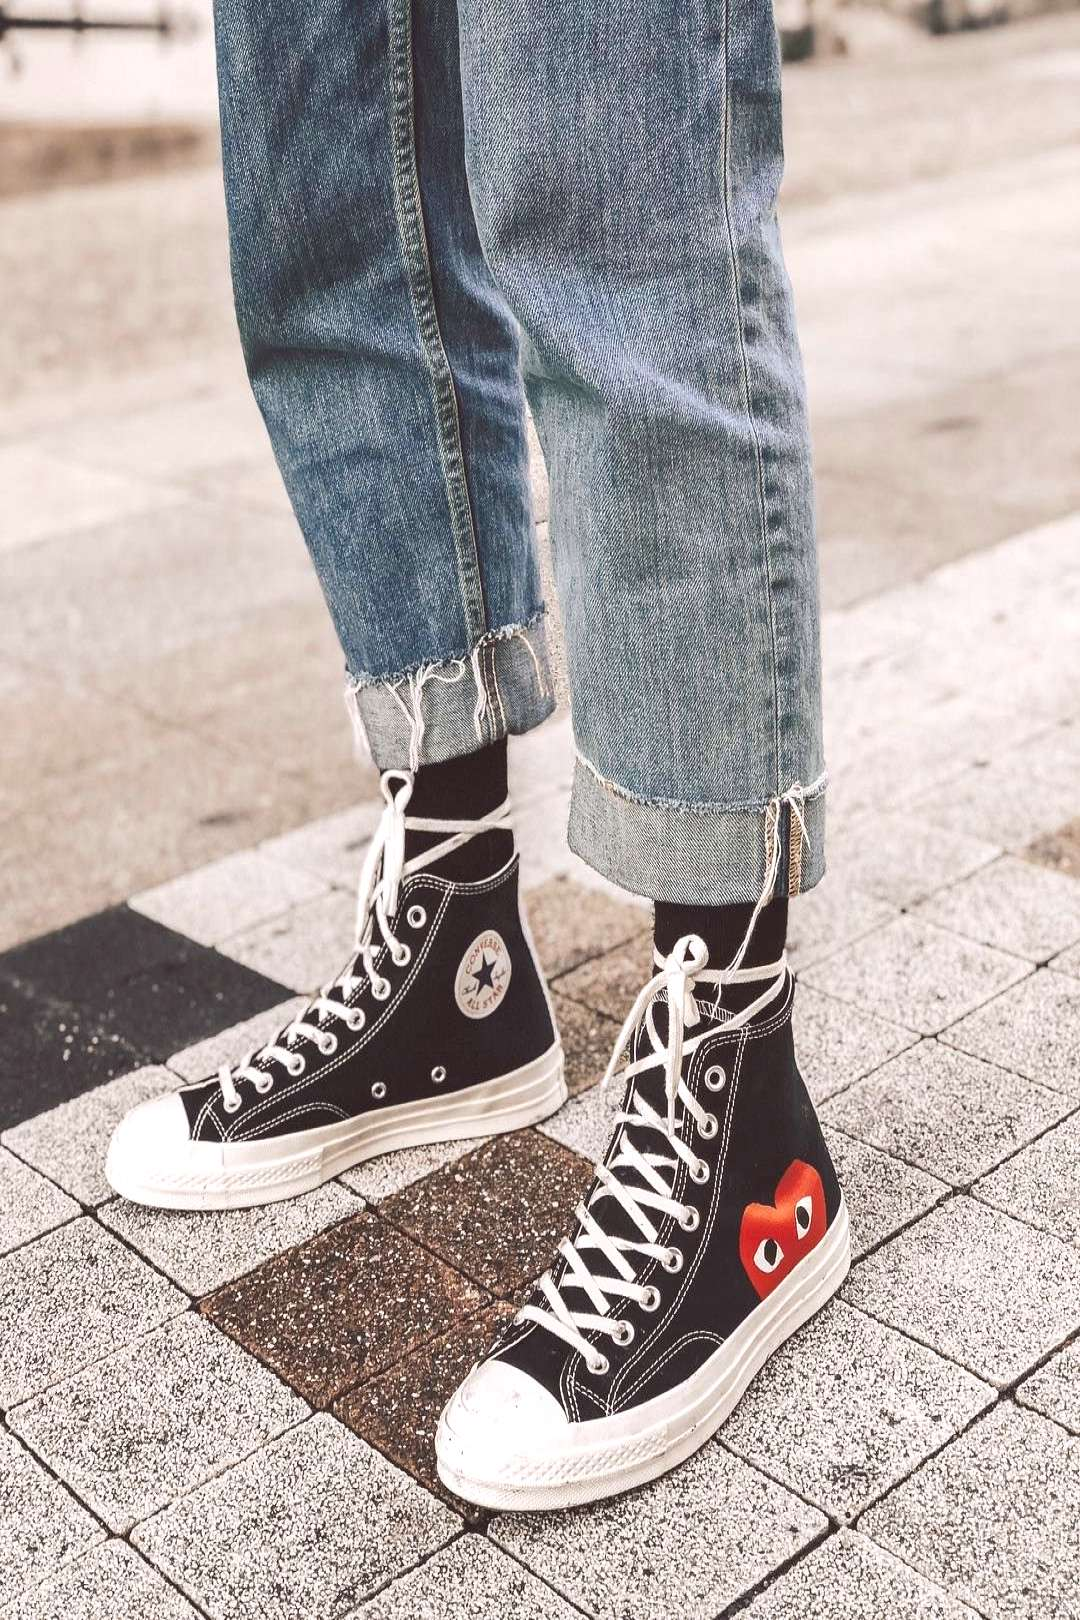 The Chuck Taylor x CDG Play!